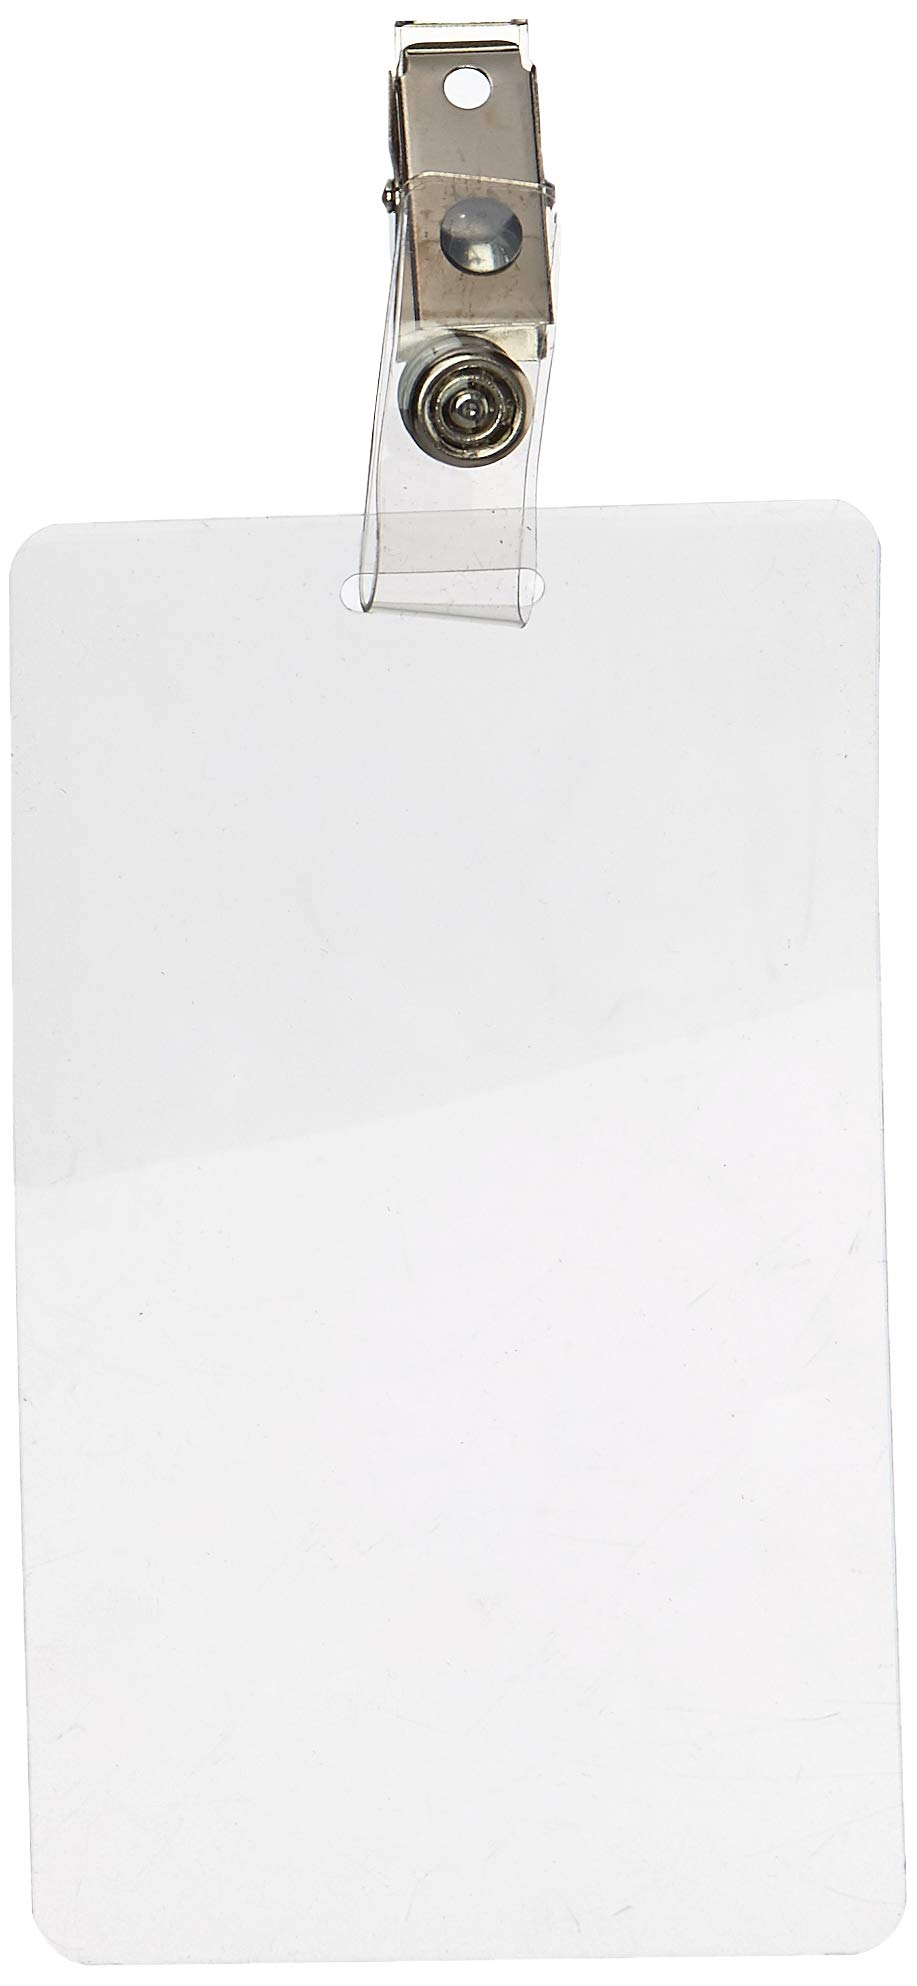 Scotch Laminating Pouches - ID badge size thermal laminating pouches, 5 mil, 4 1/4 x 2 1/5, 10/pack